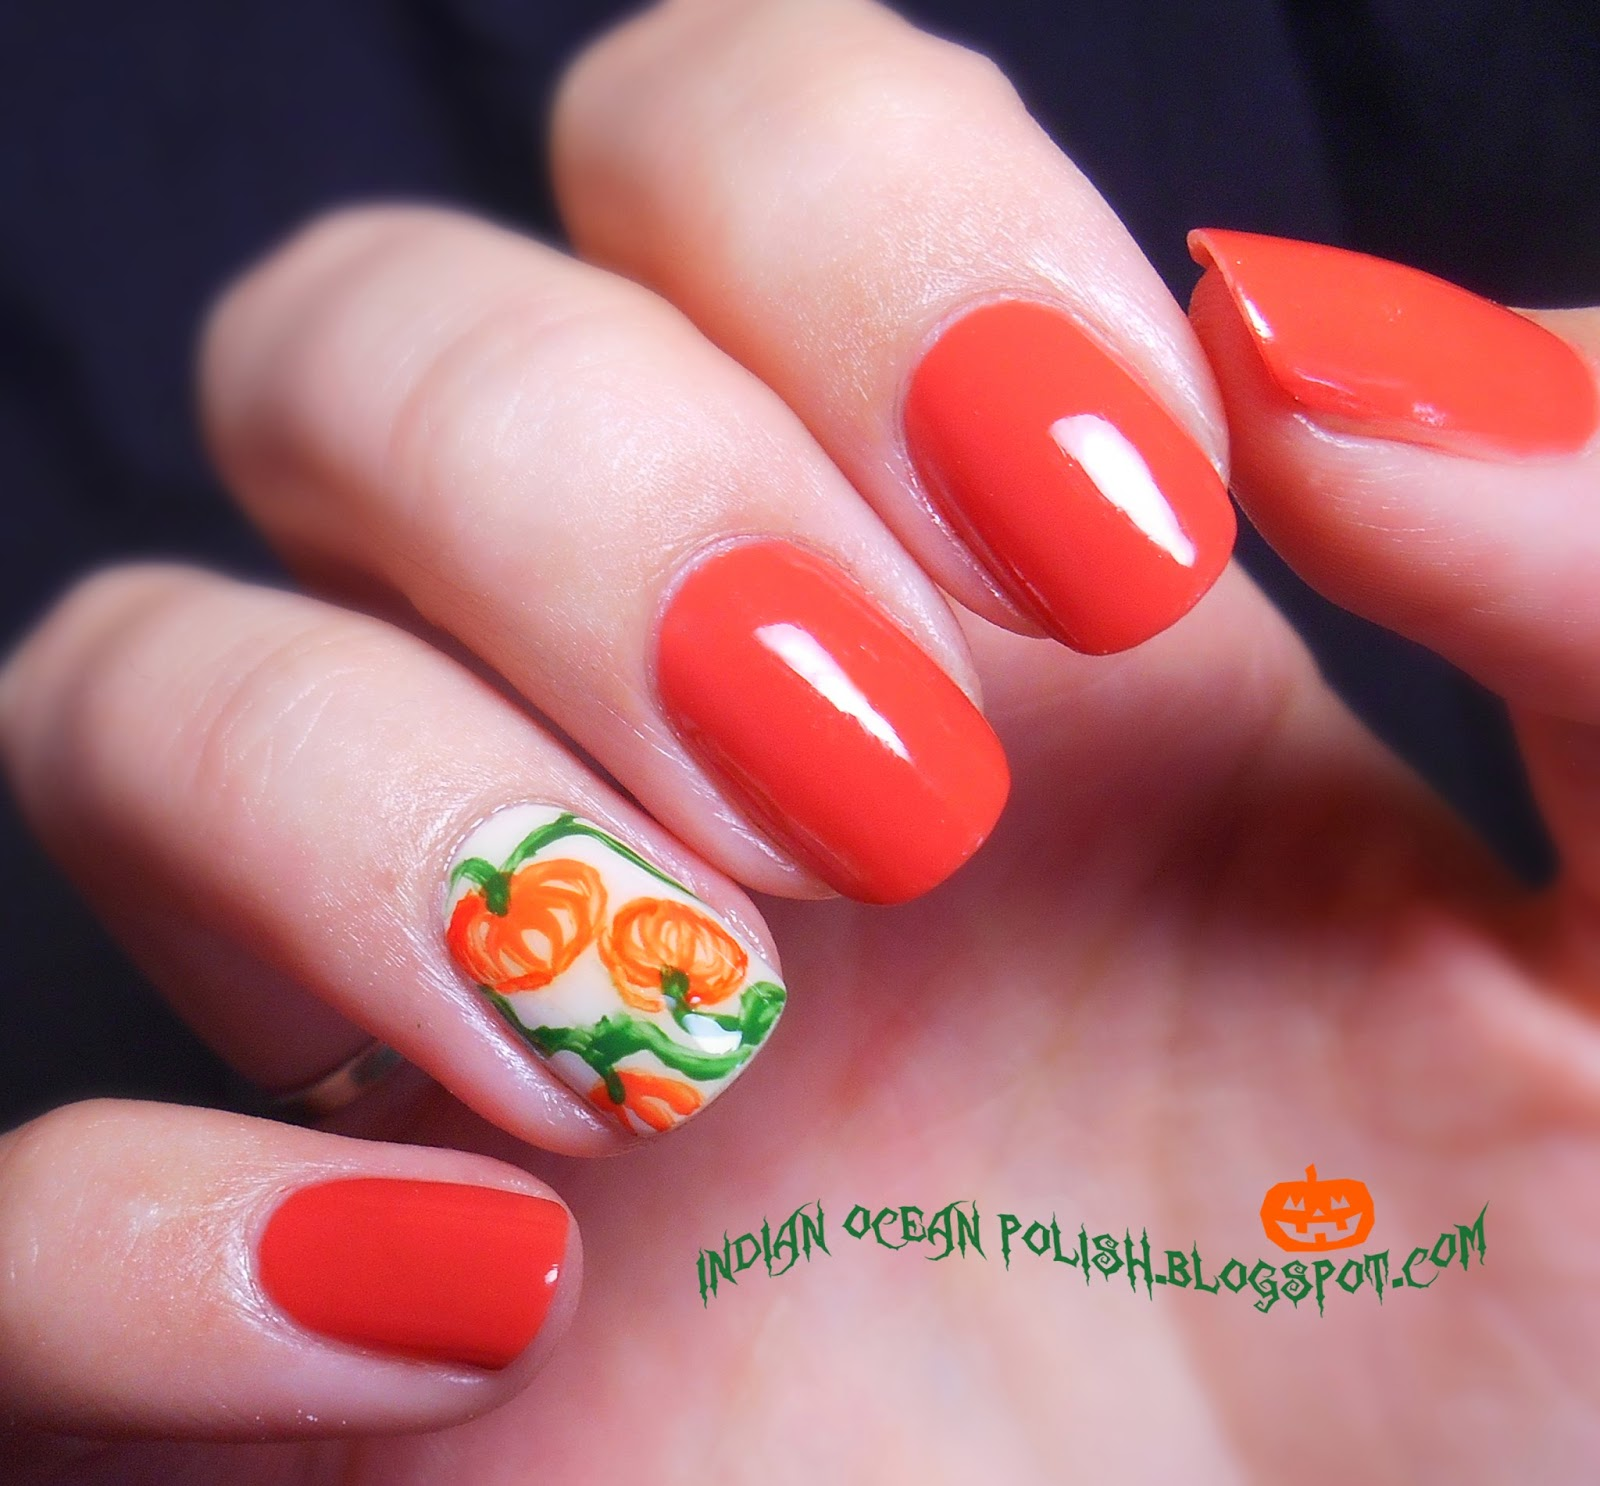 Halloween Nail Art: Indian Ocean Polish: A Few Halloween Nail Art Ideas For 2013